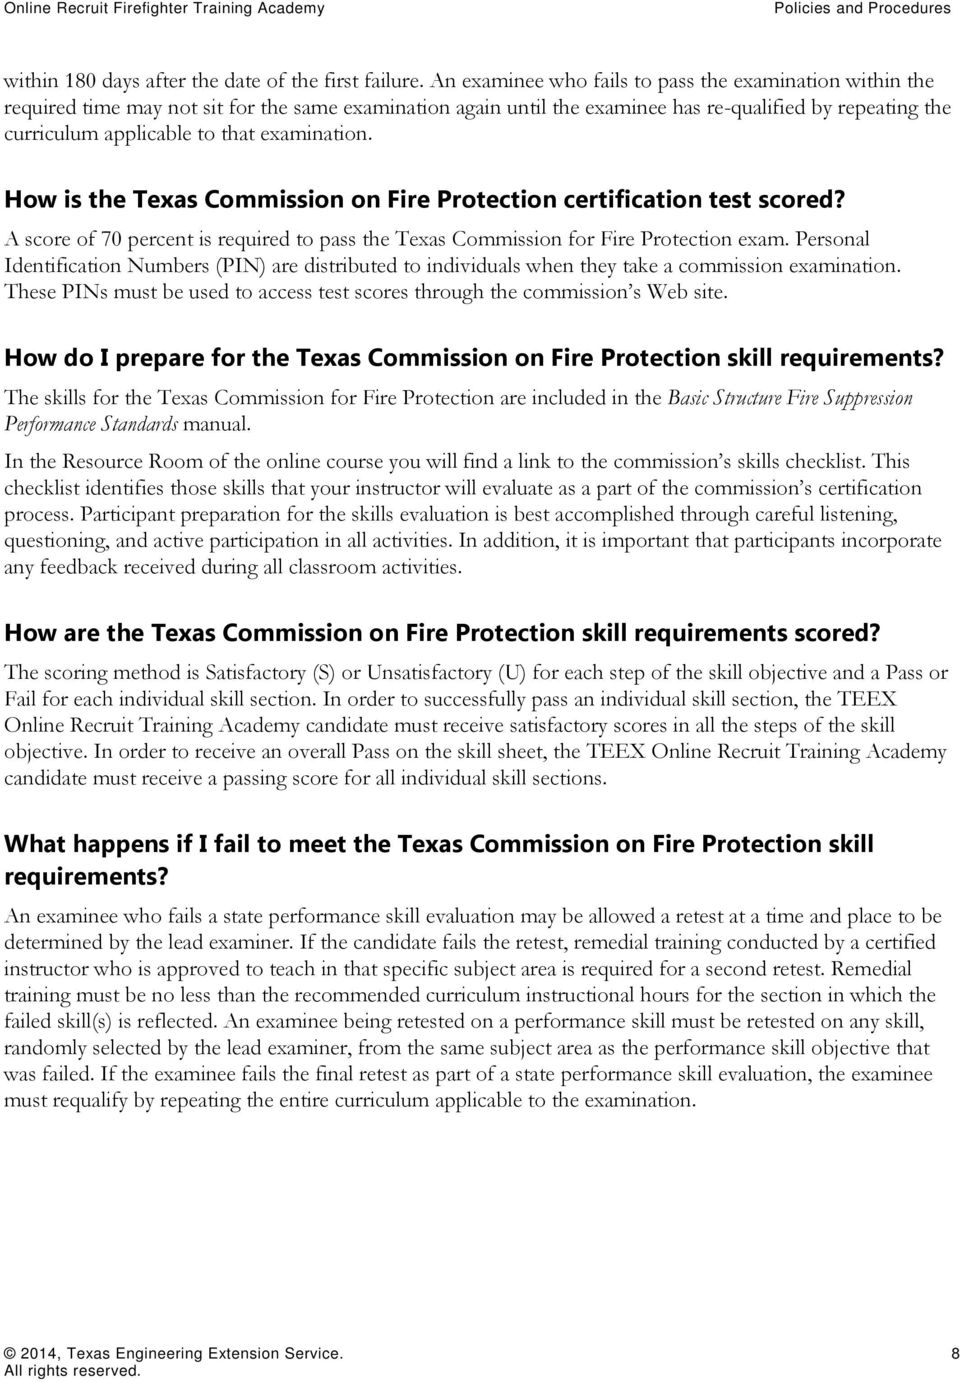 examination. How is the Texas Commission on Fire Protection certification test scored? A score of 70 percent is required to pass the Texas Commission for Fire Protection exam.